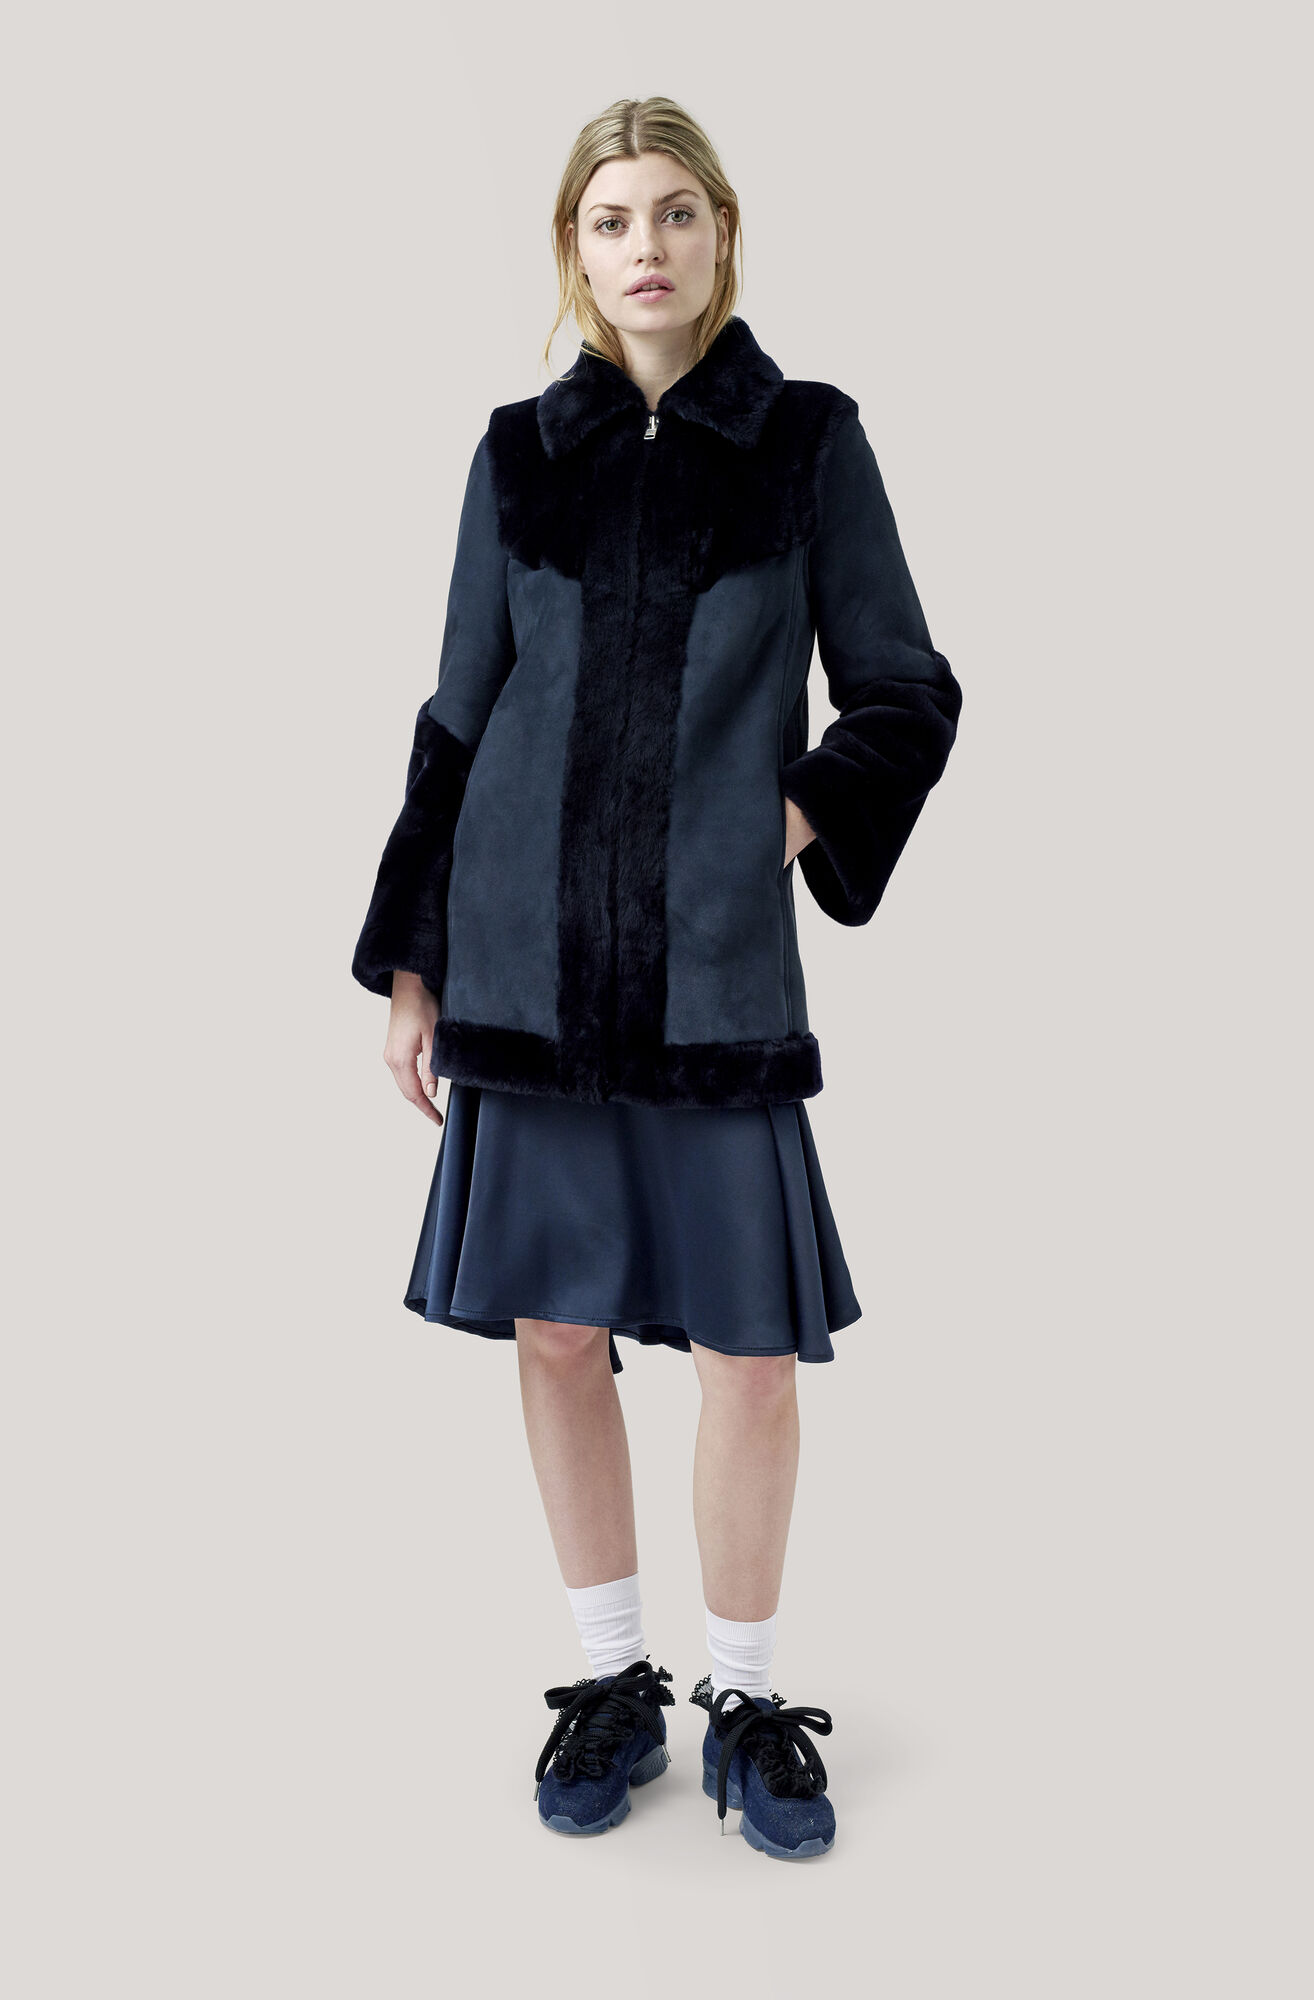 Lexington Shearling Long Jacket, Total Eclipse, hi-res